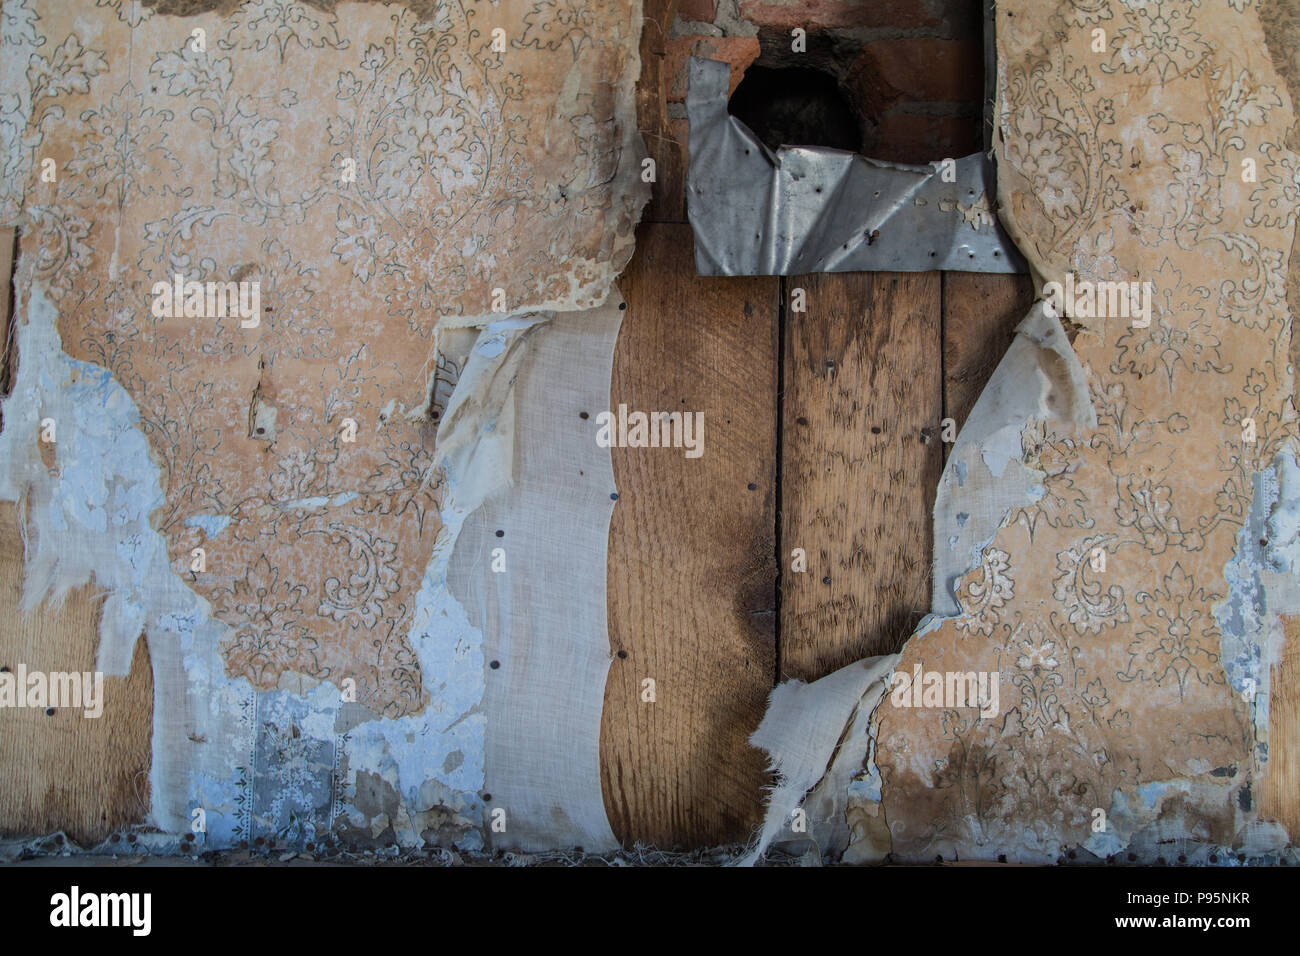 cracked wallpaper in an abandoned home in bodie, california, the